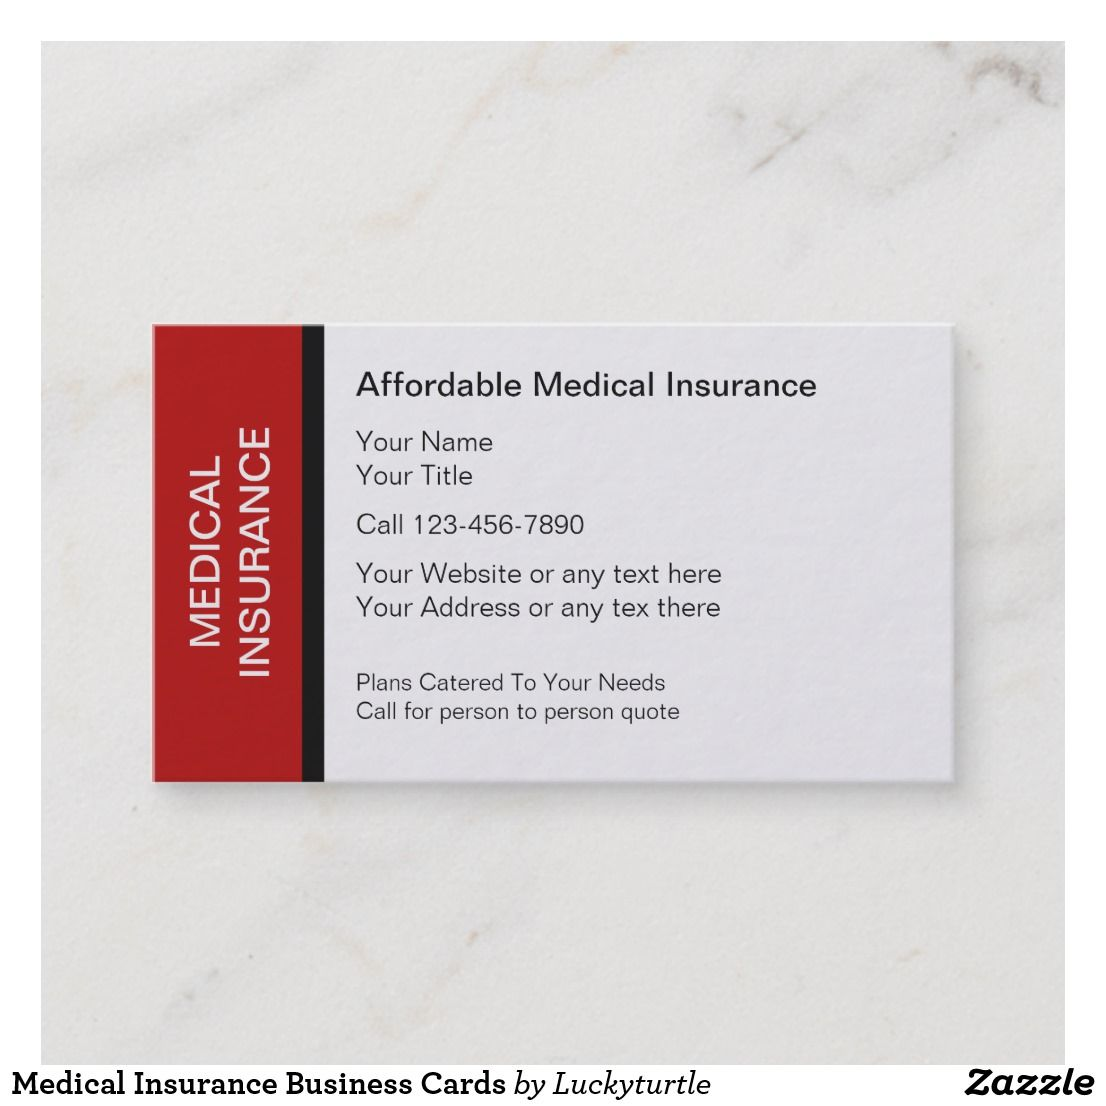 Medical Insurance Business Cards Zazzle Com